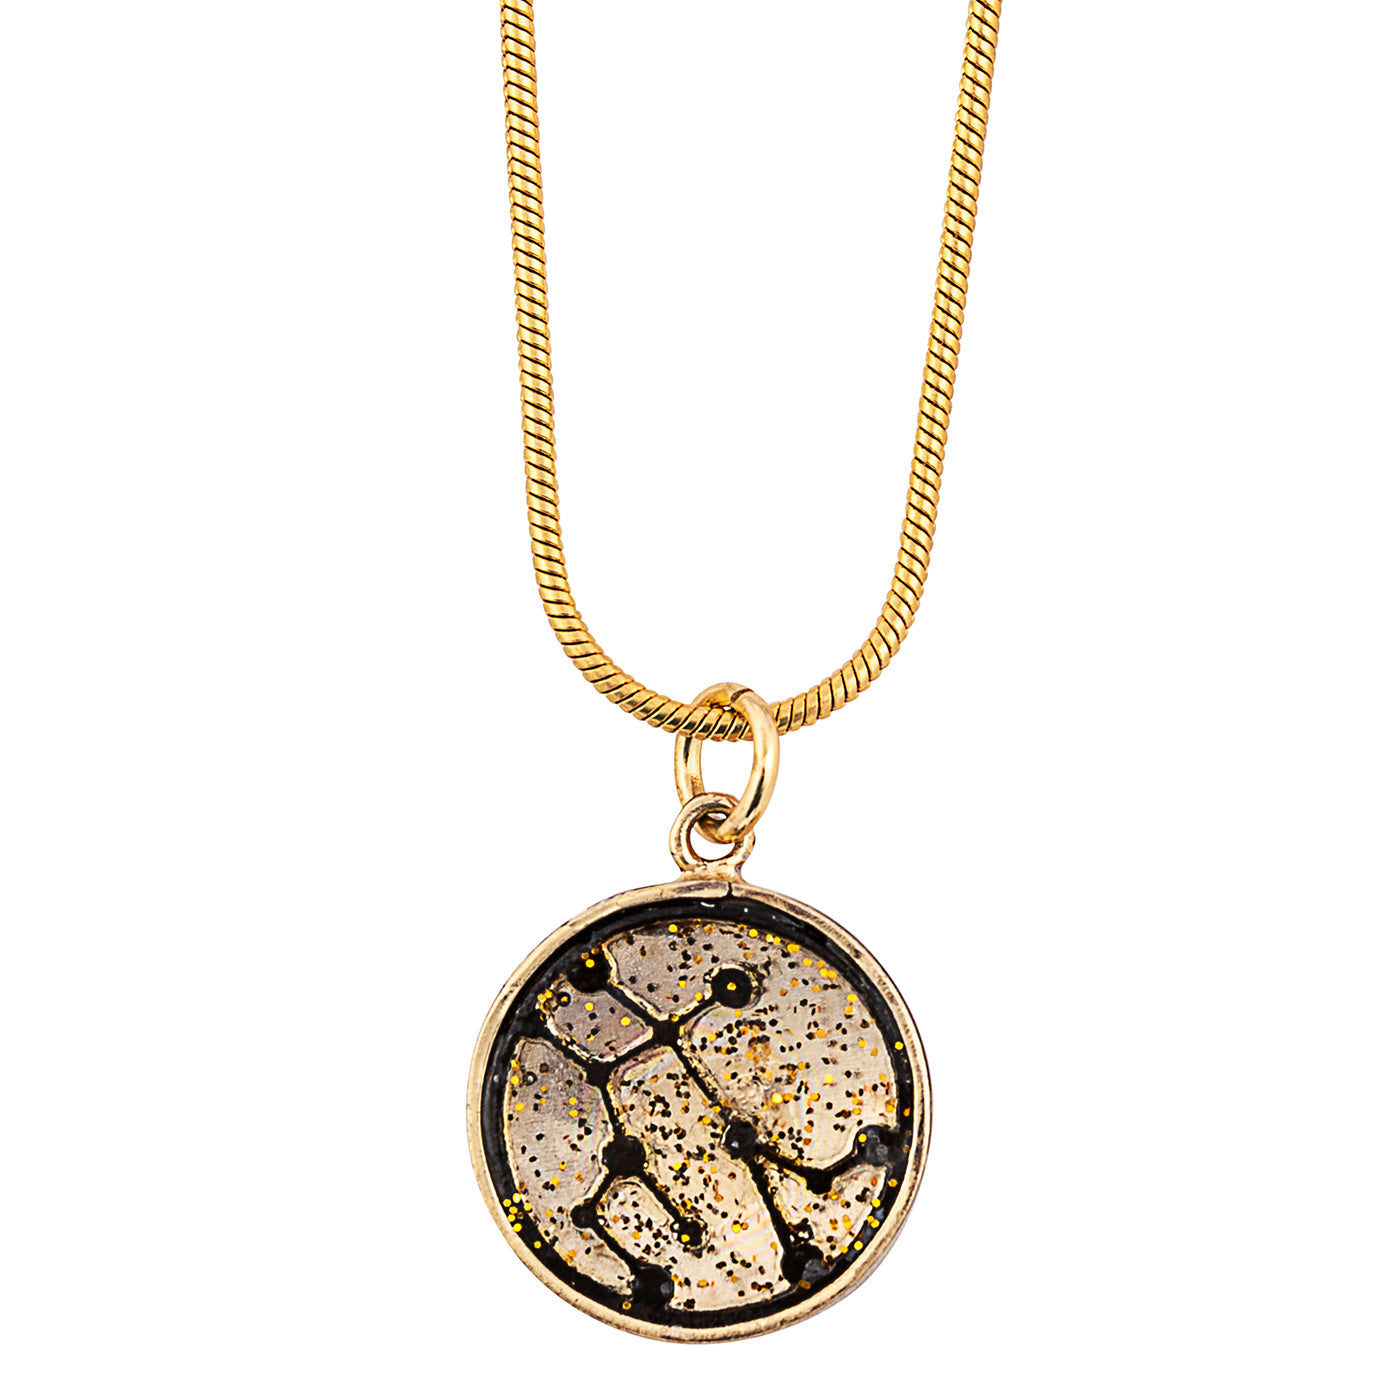 Gemini Zodiac Sign Sustainable Necklace